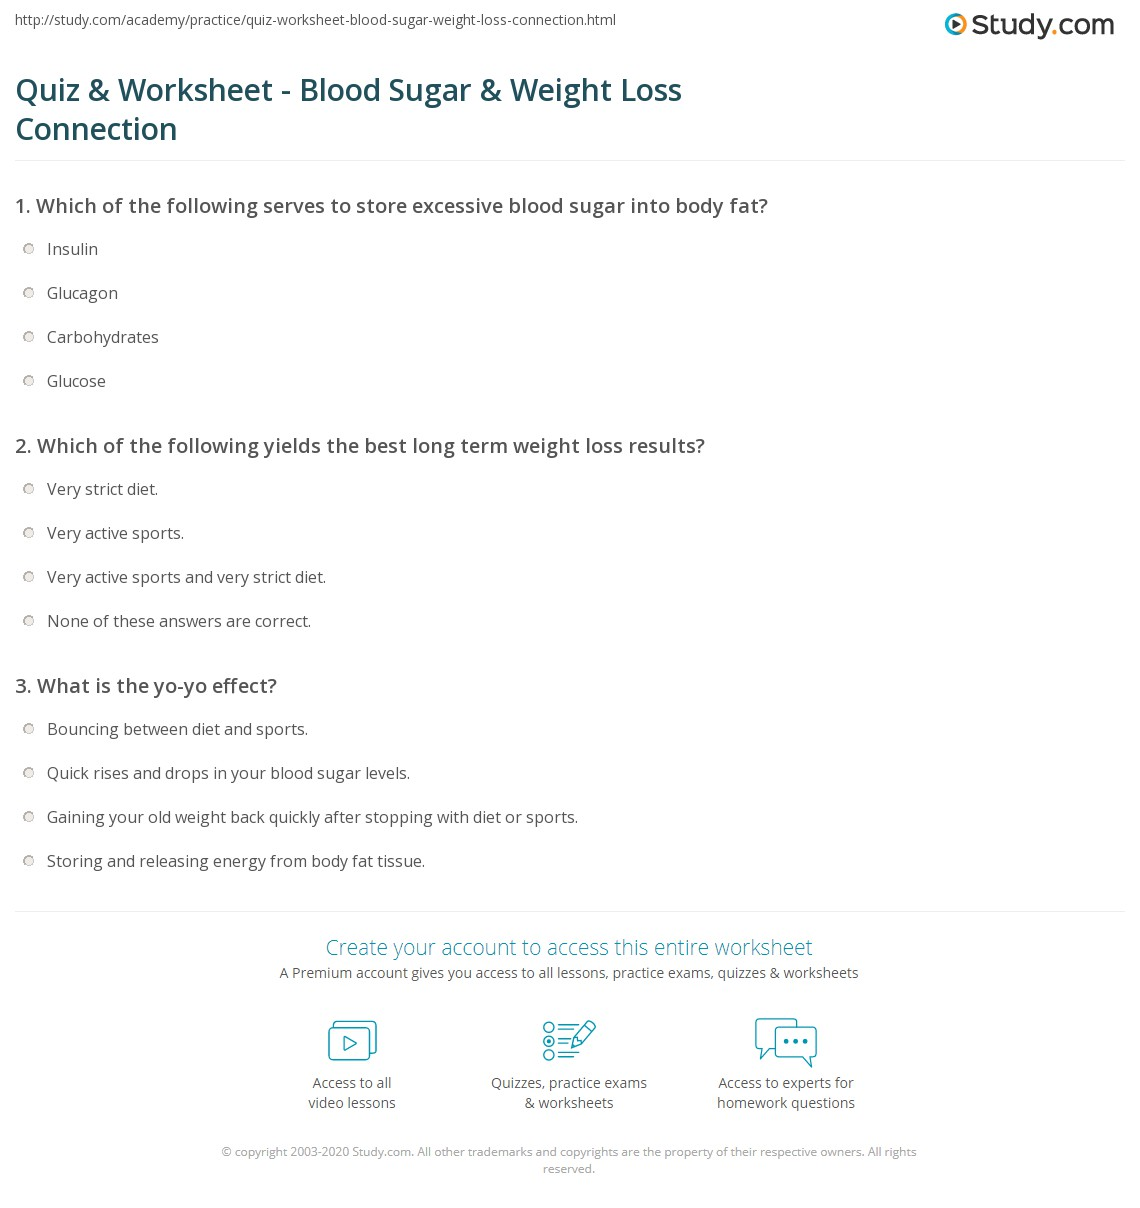 quiz worksheet blood sugar weight loss connection study com